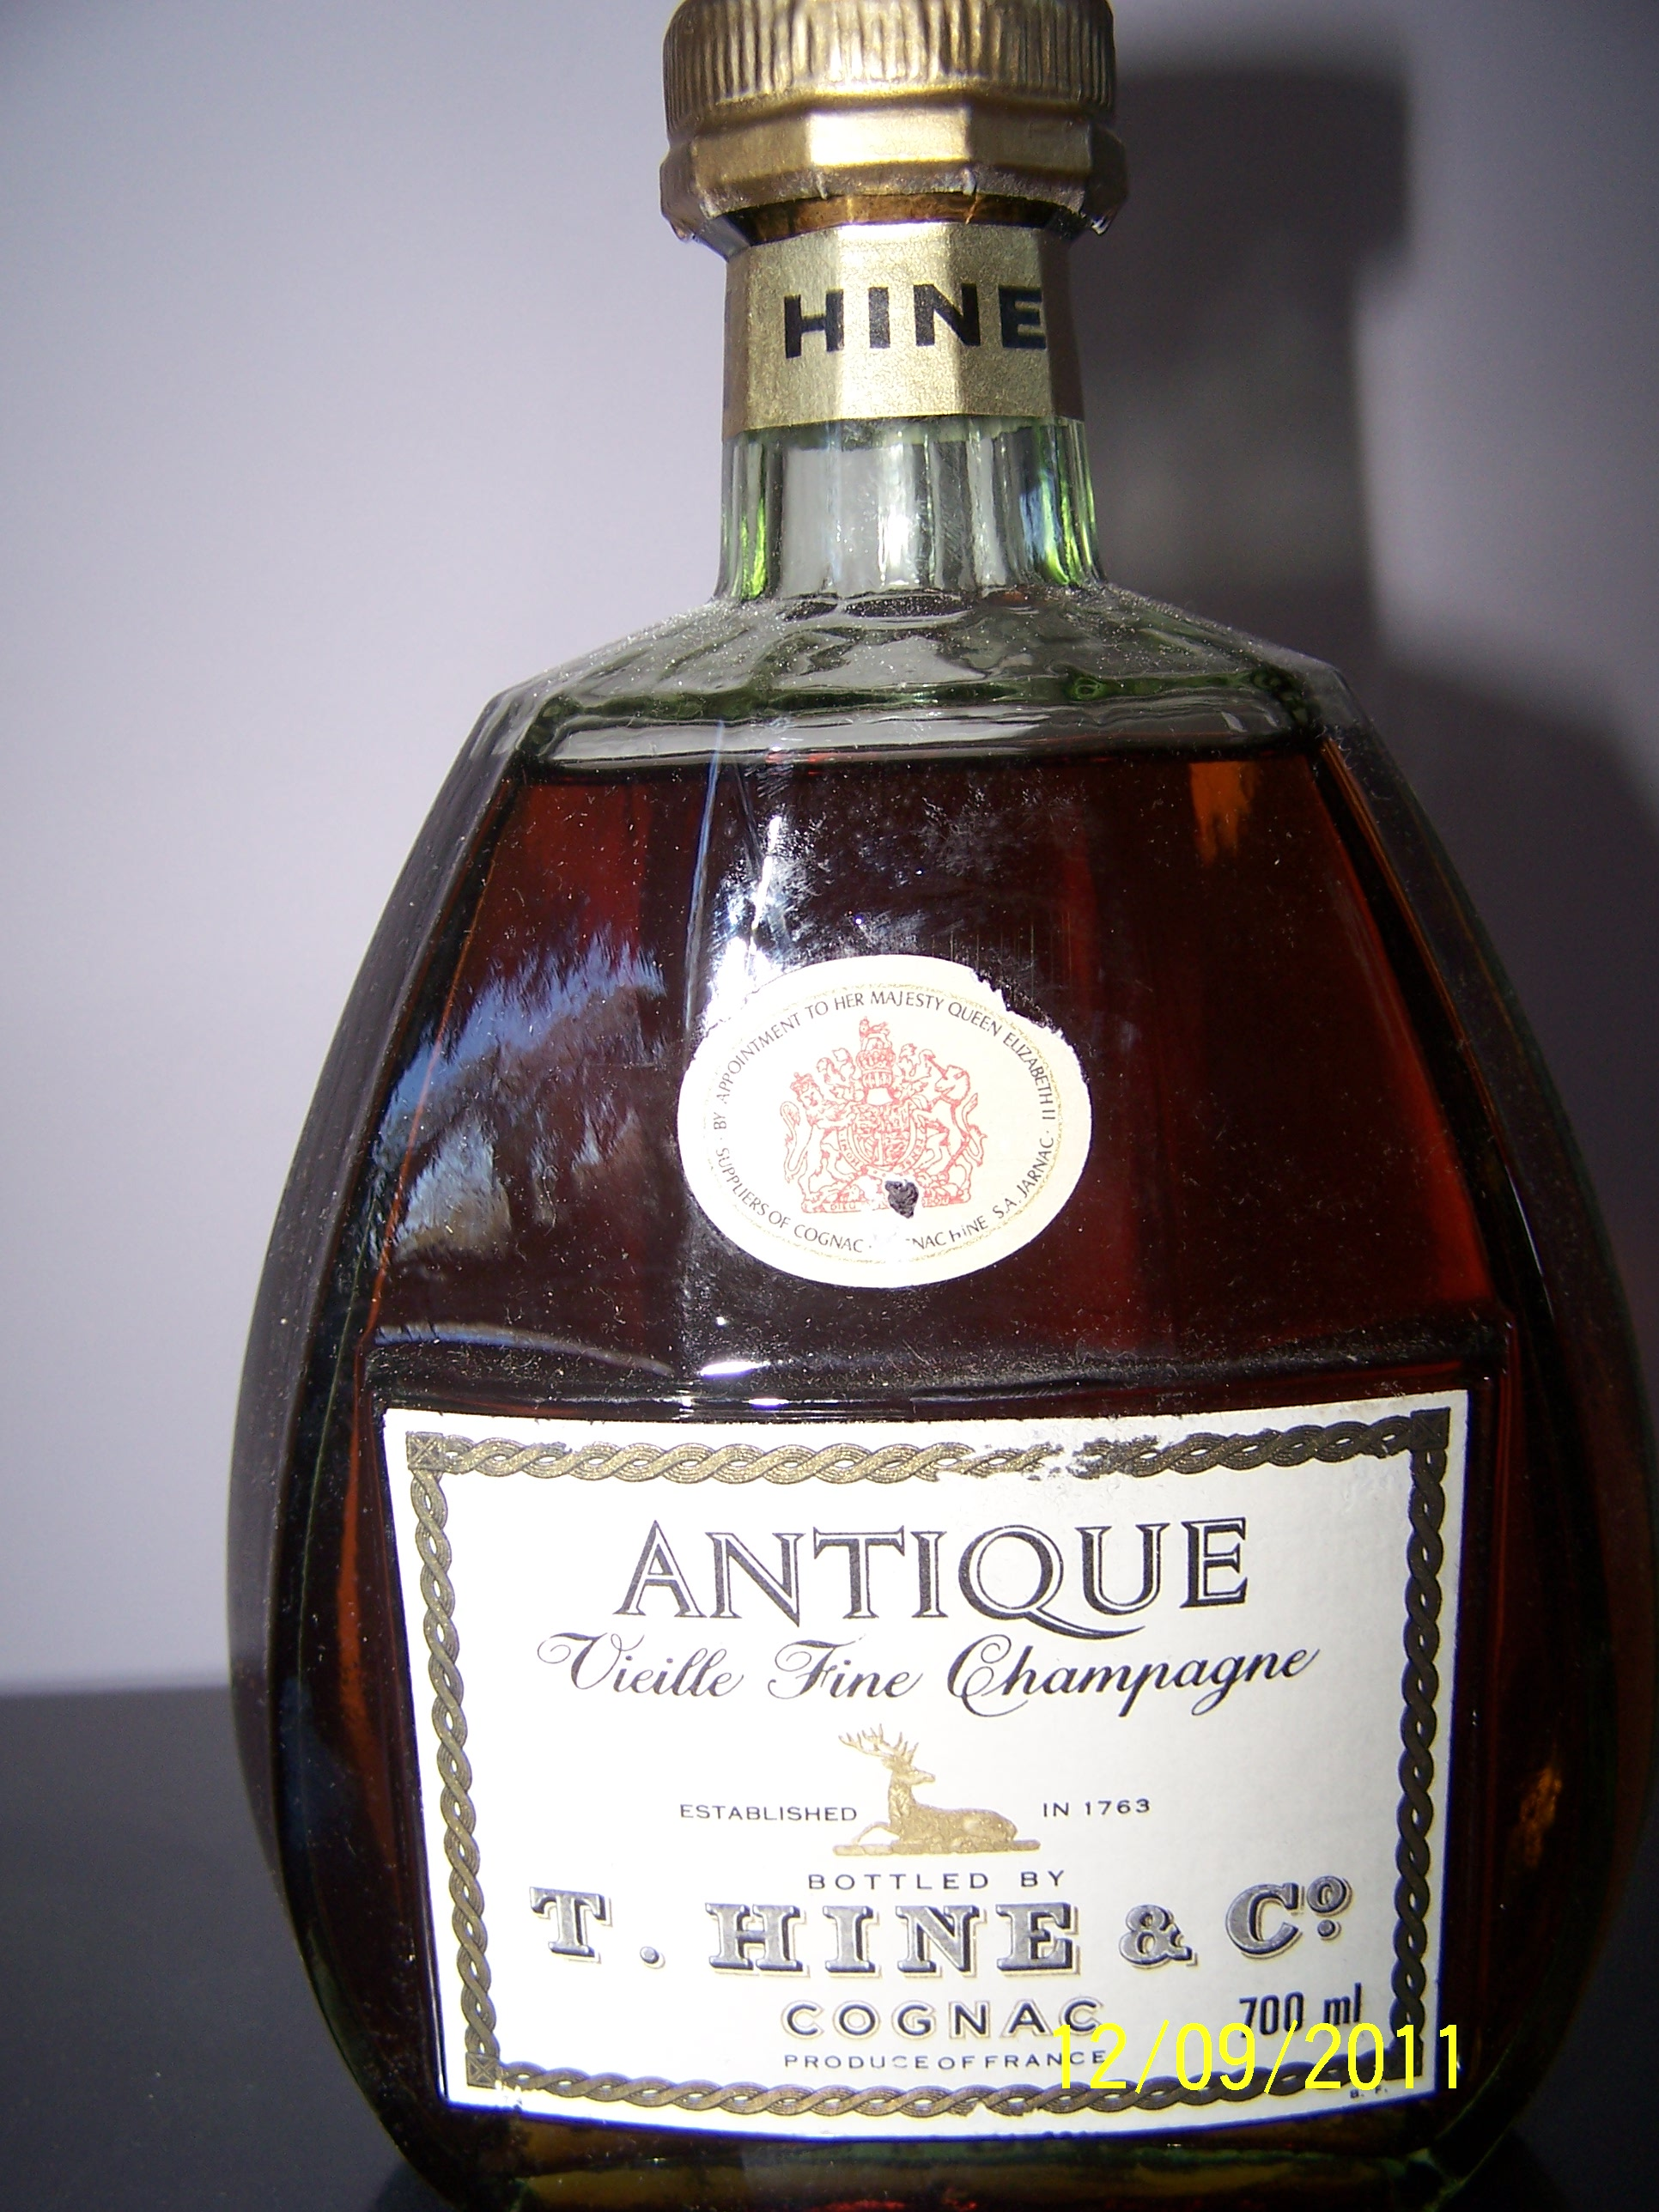 Hine Antique Vieille Fine Champagne: For Sale but what's the Value?